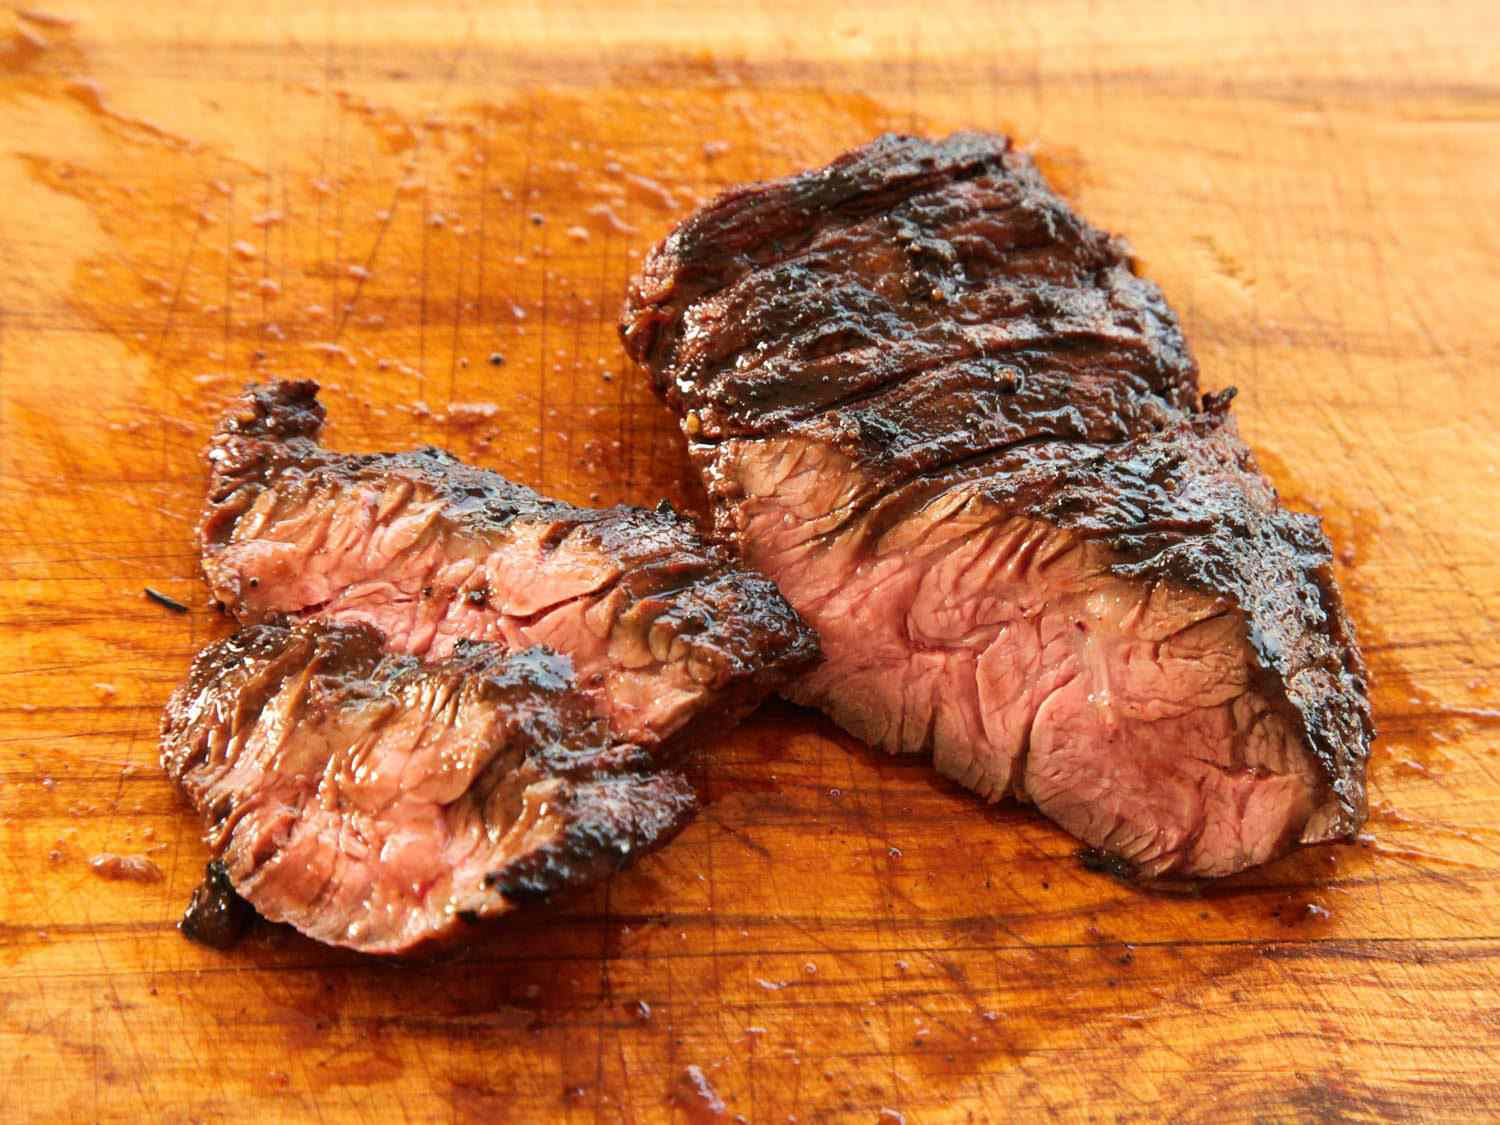 Sliced cooked marinated skirt steak against a wooden cutting board.